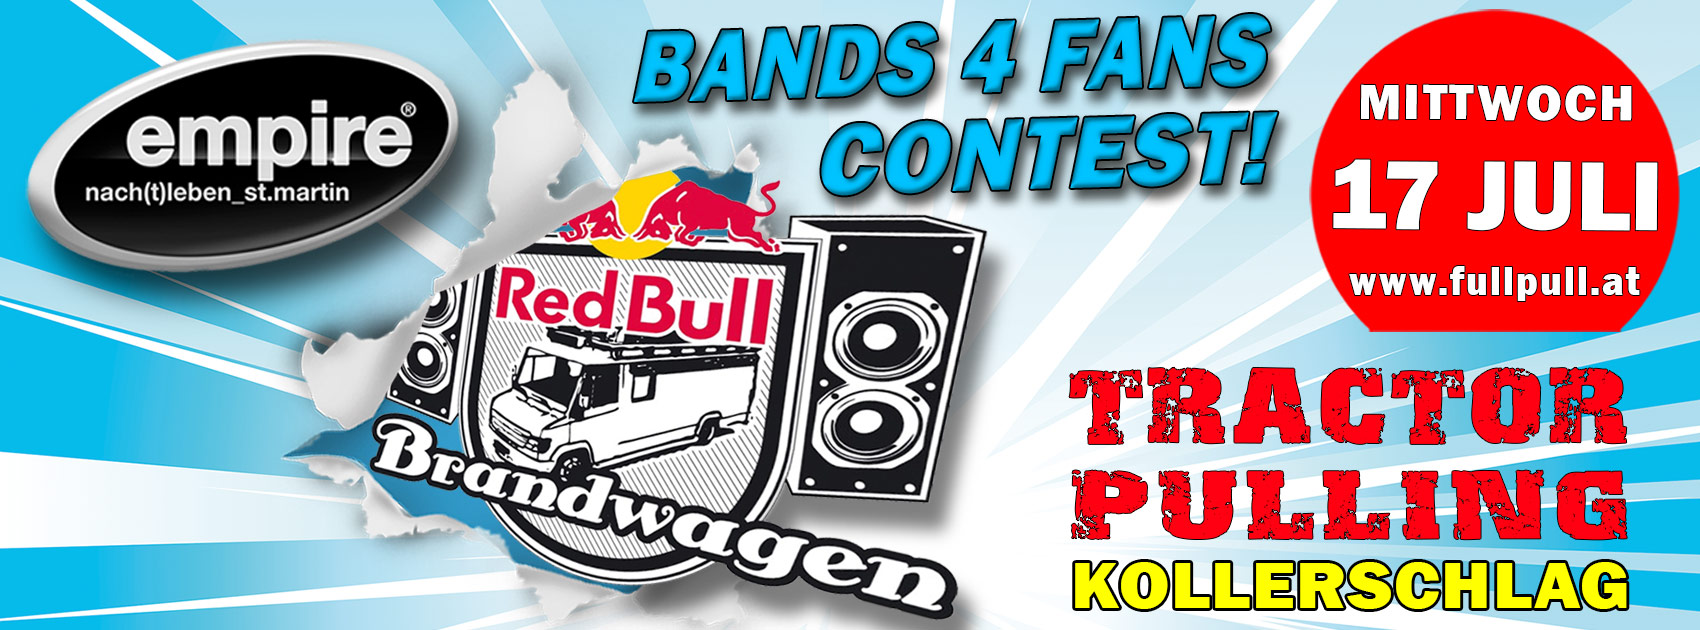 TP_Flyer_Bands_4_Fans_Contest_1700x630px